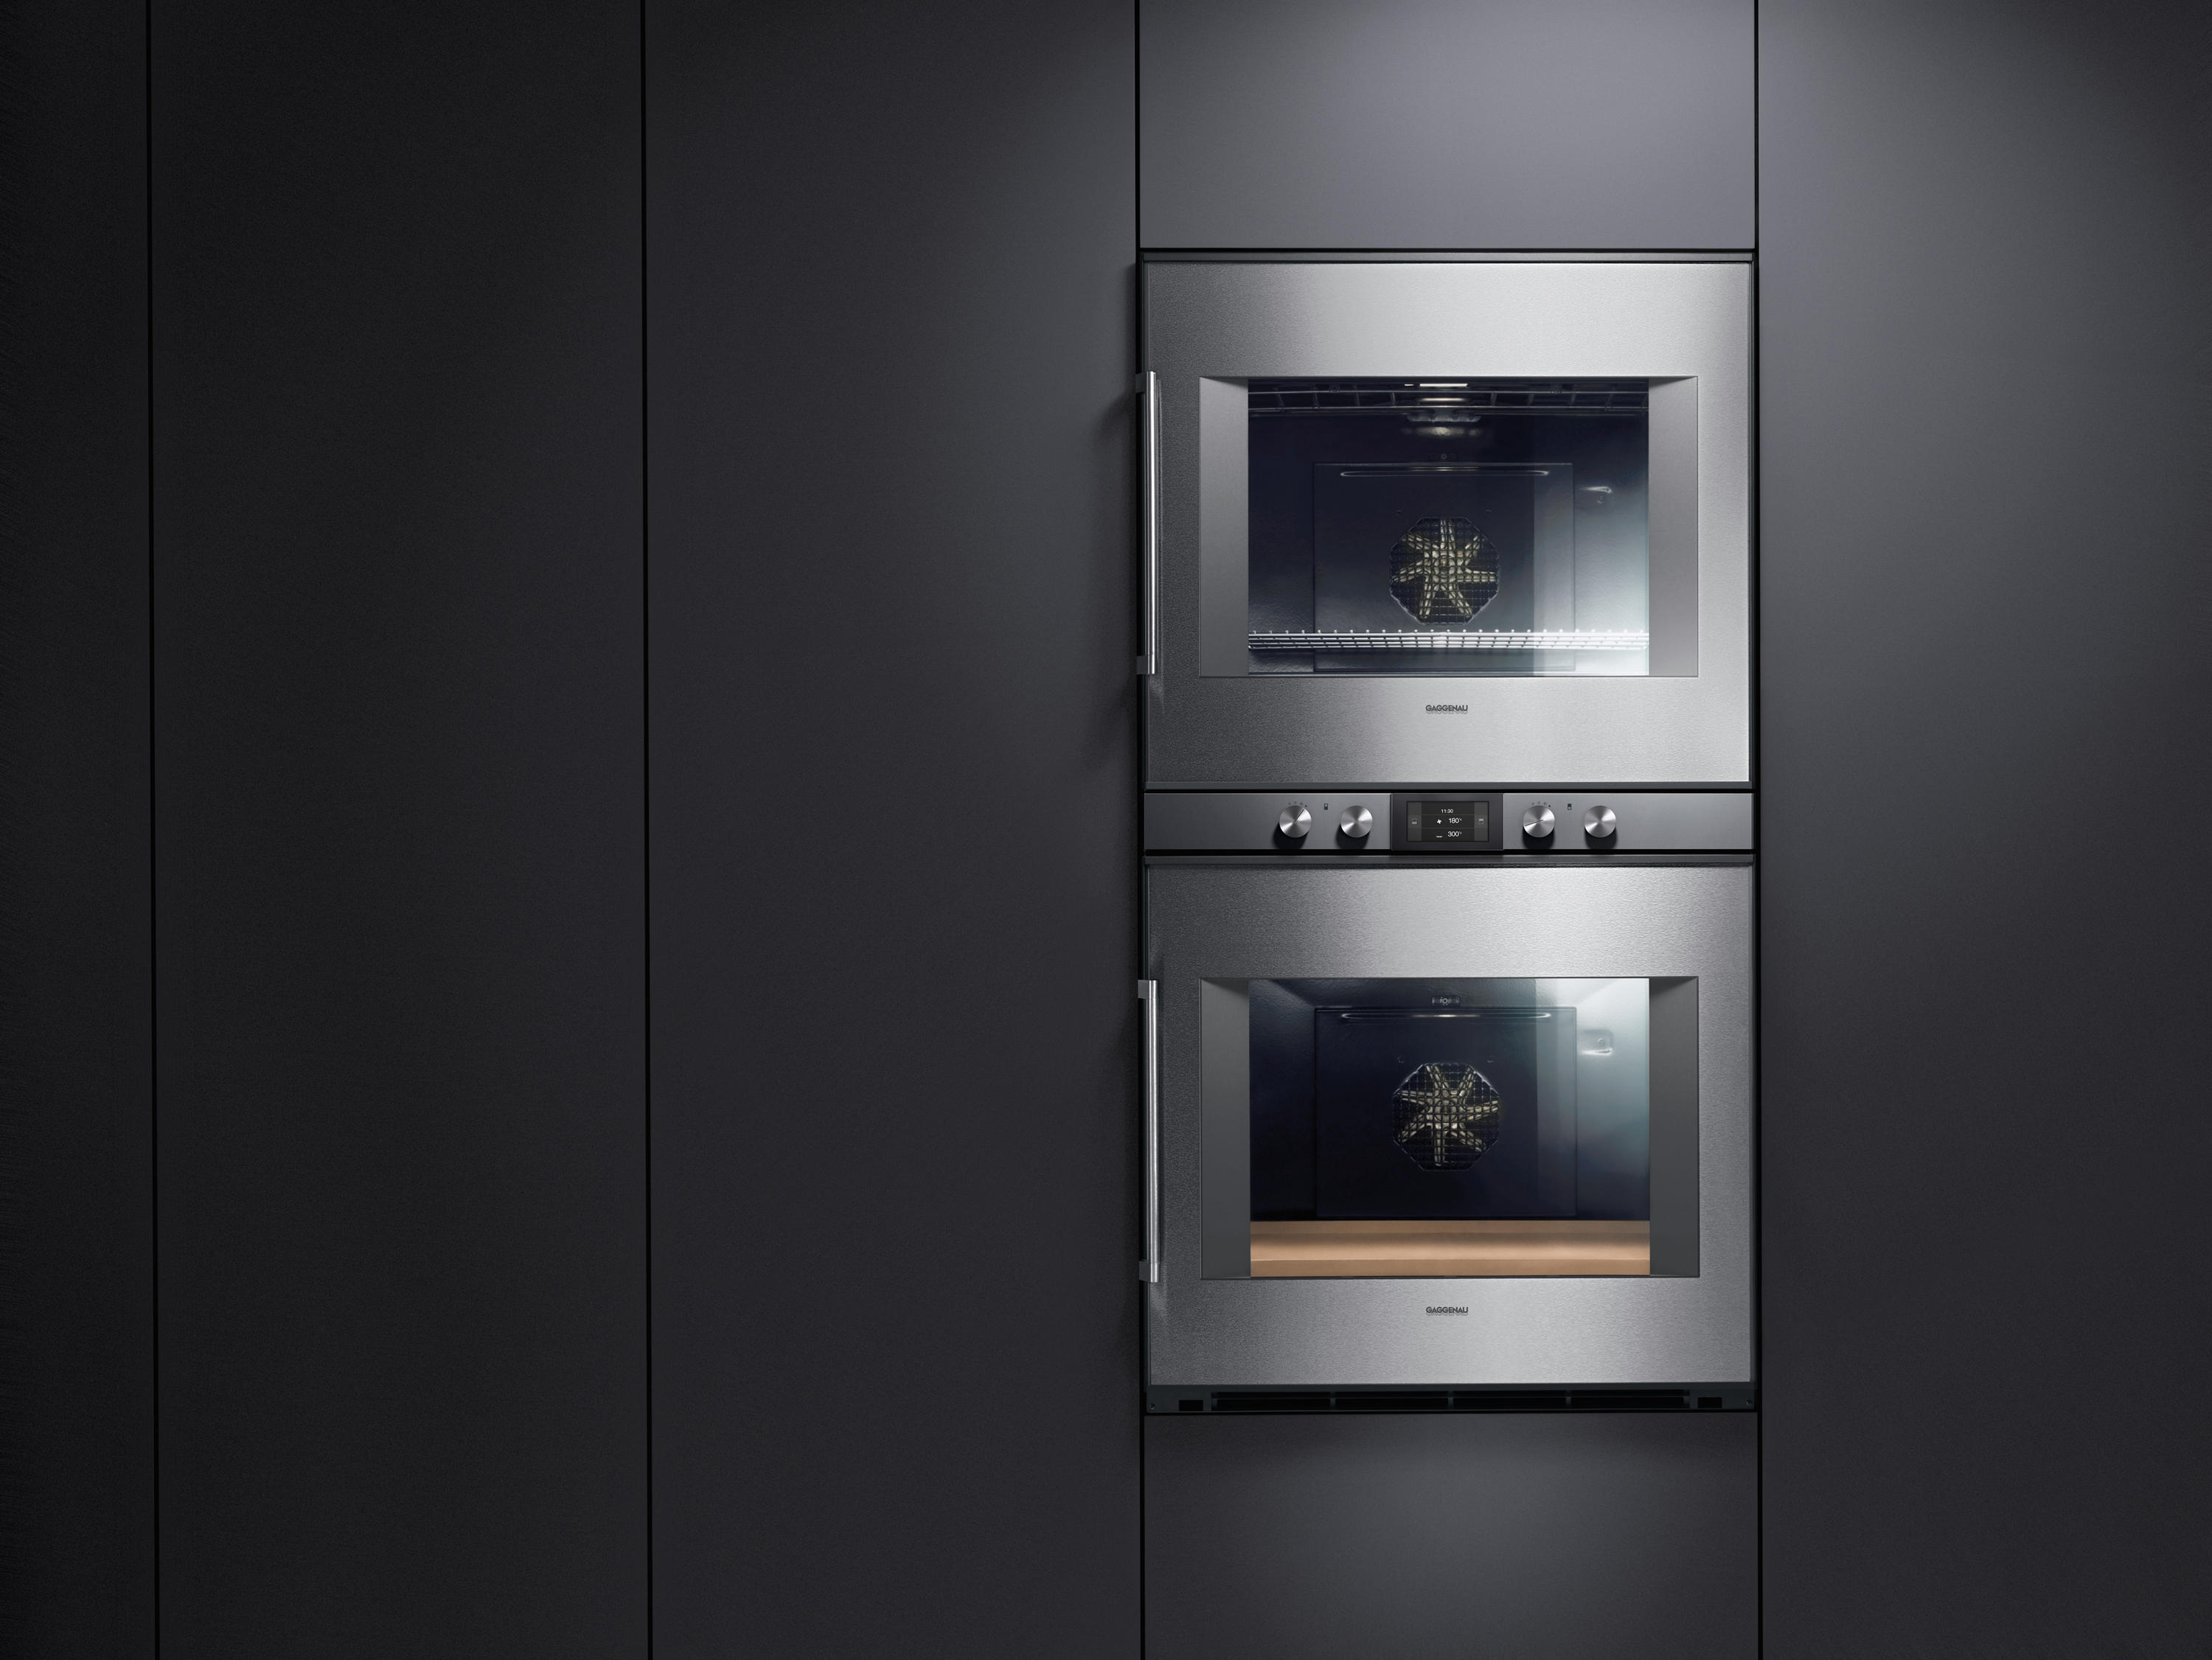 Double Oven 400 Series Bx 480 Bx 481 Ovens From Gaggenau